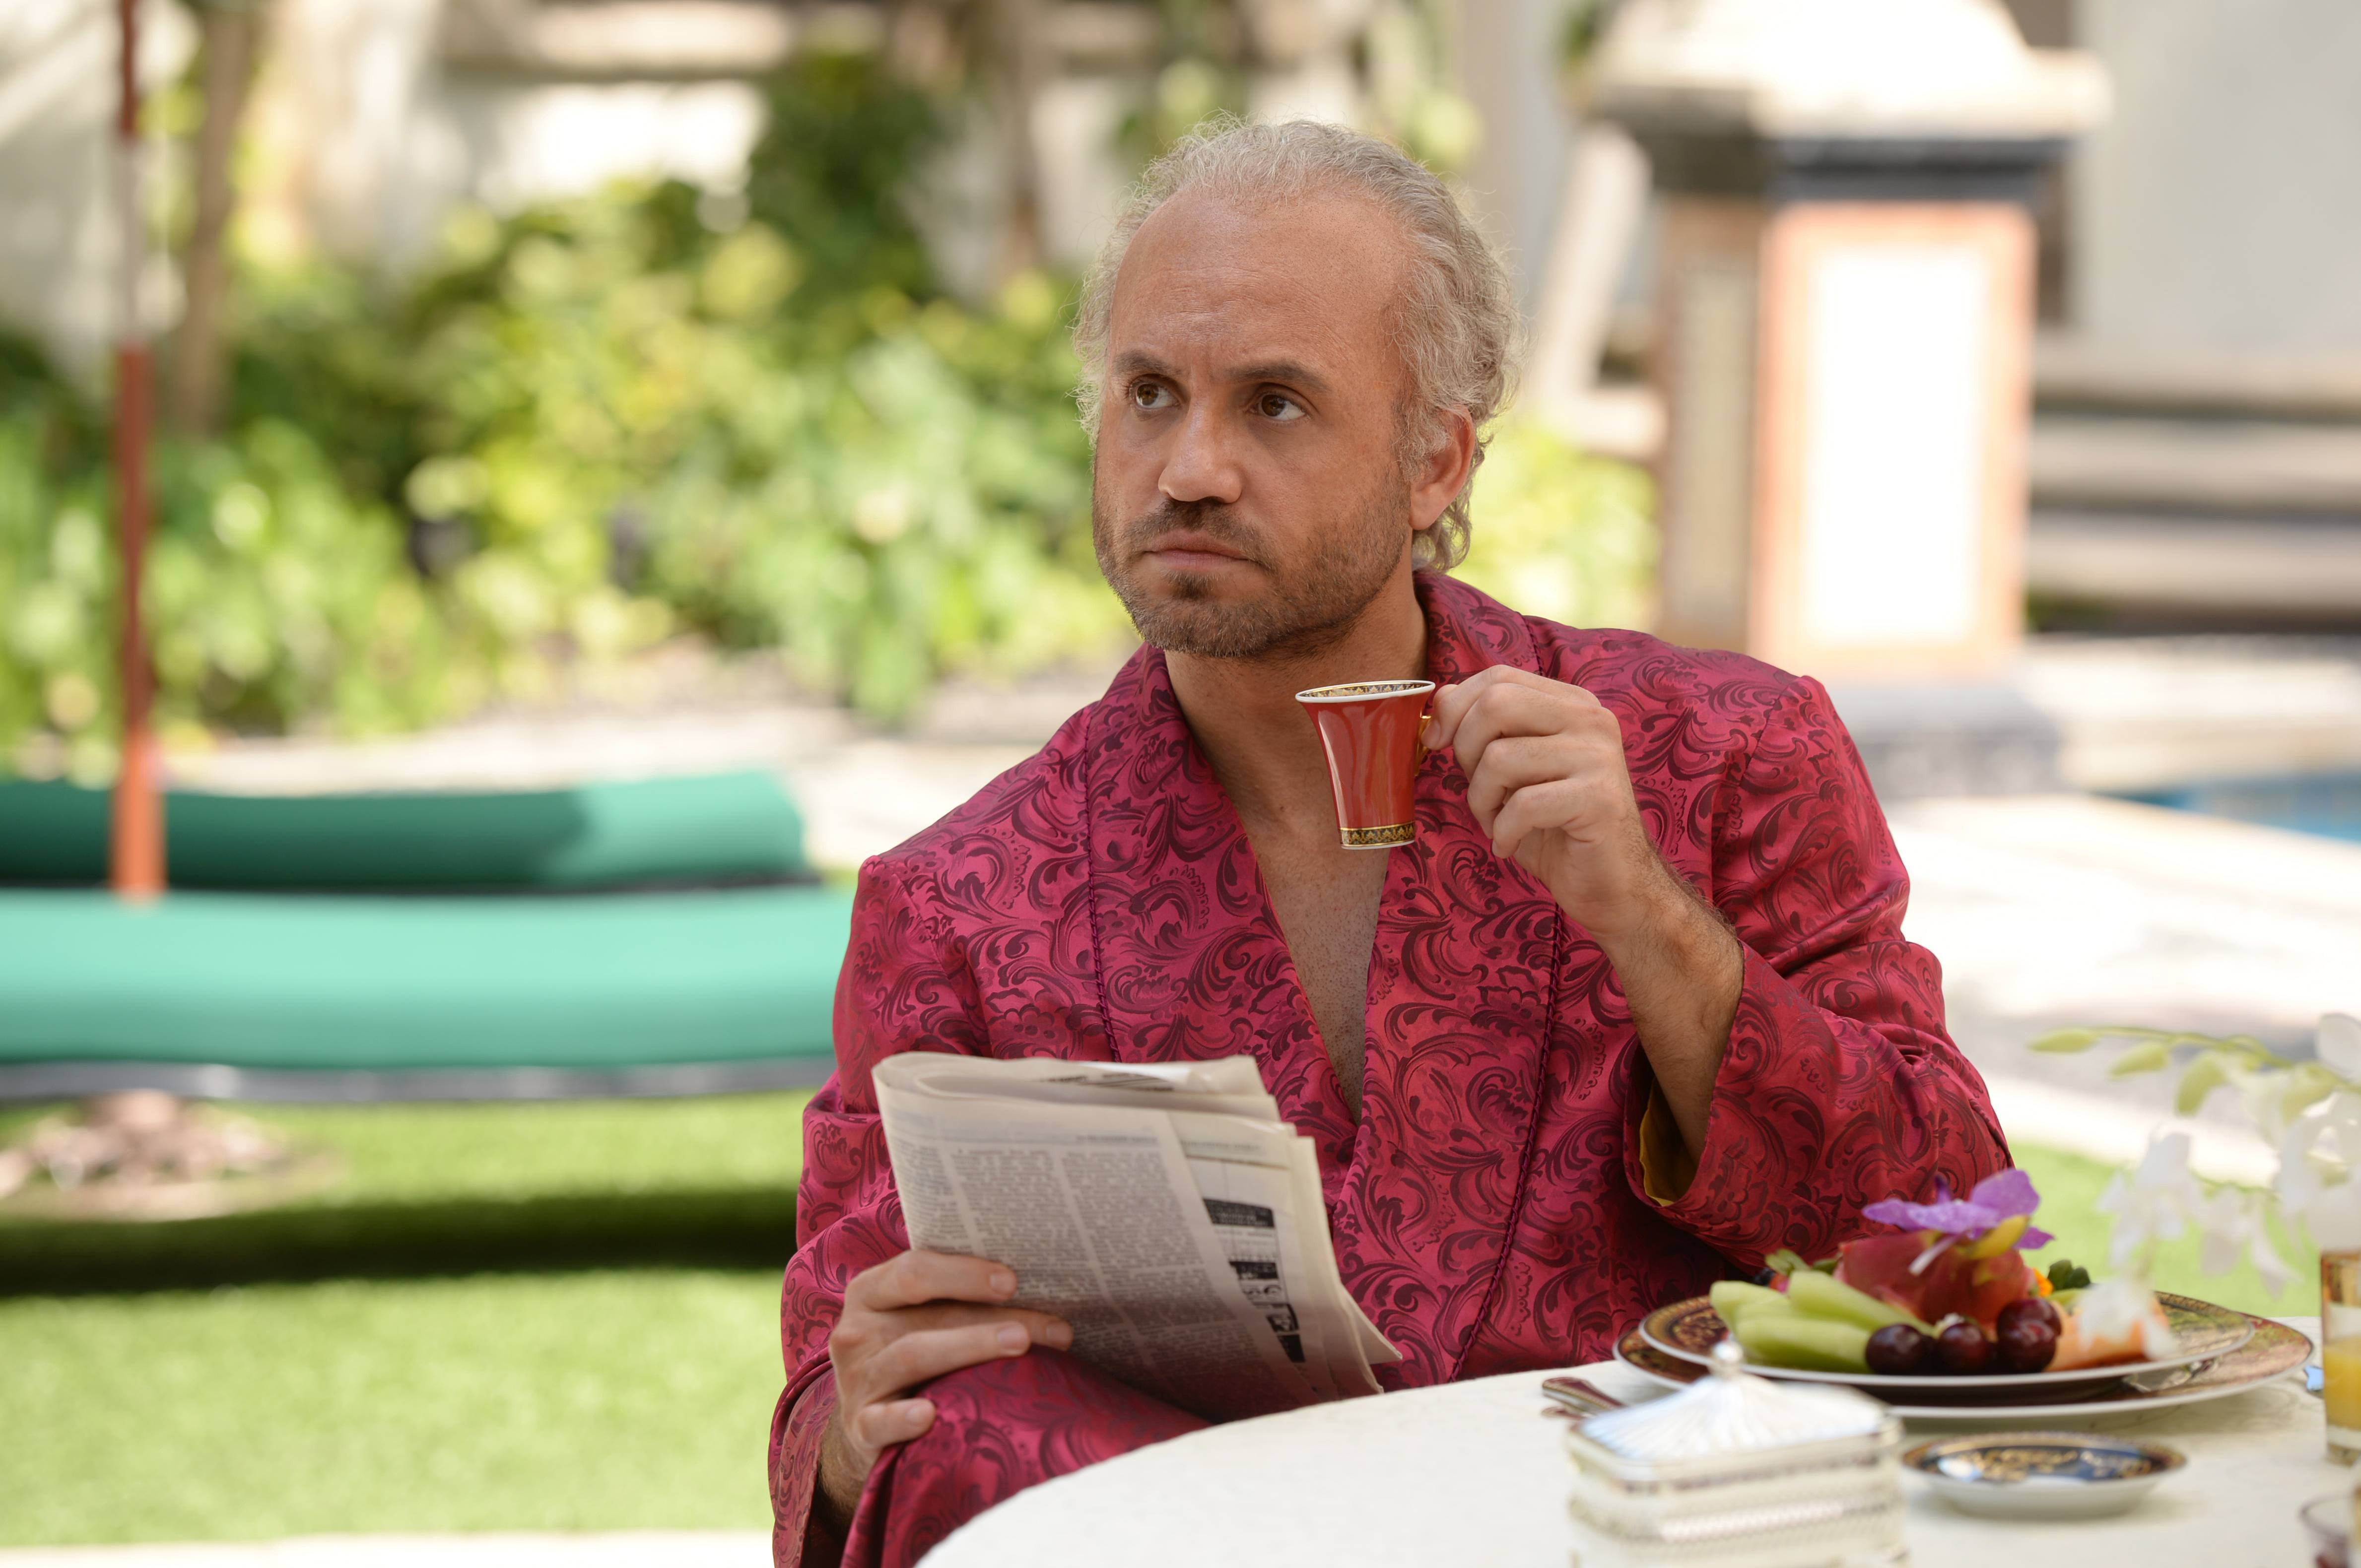 """THE ASSASSINATION OF GIANNI VERSACE: AMERICAN CRIME STORY """"The Man Who Would Be Vogue"""" Episode 2 (Airs Wednesday. January 24, 10:00 p.m. e/p) -- Pictured: Edgar Ramirez as Gianni Versace. CR: Jeff Daly/FX"""